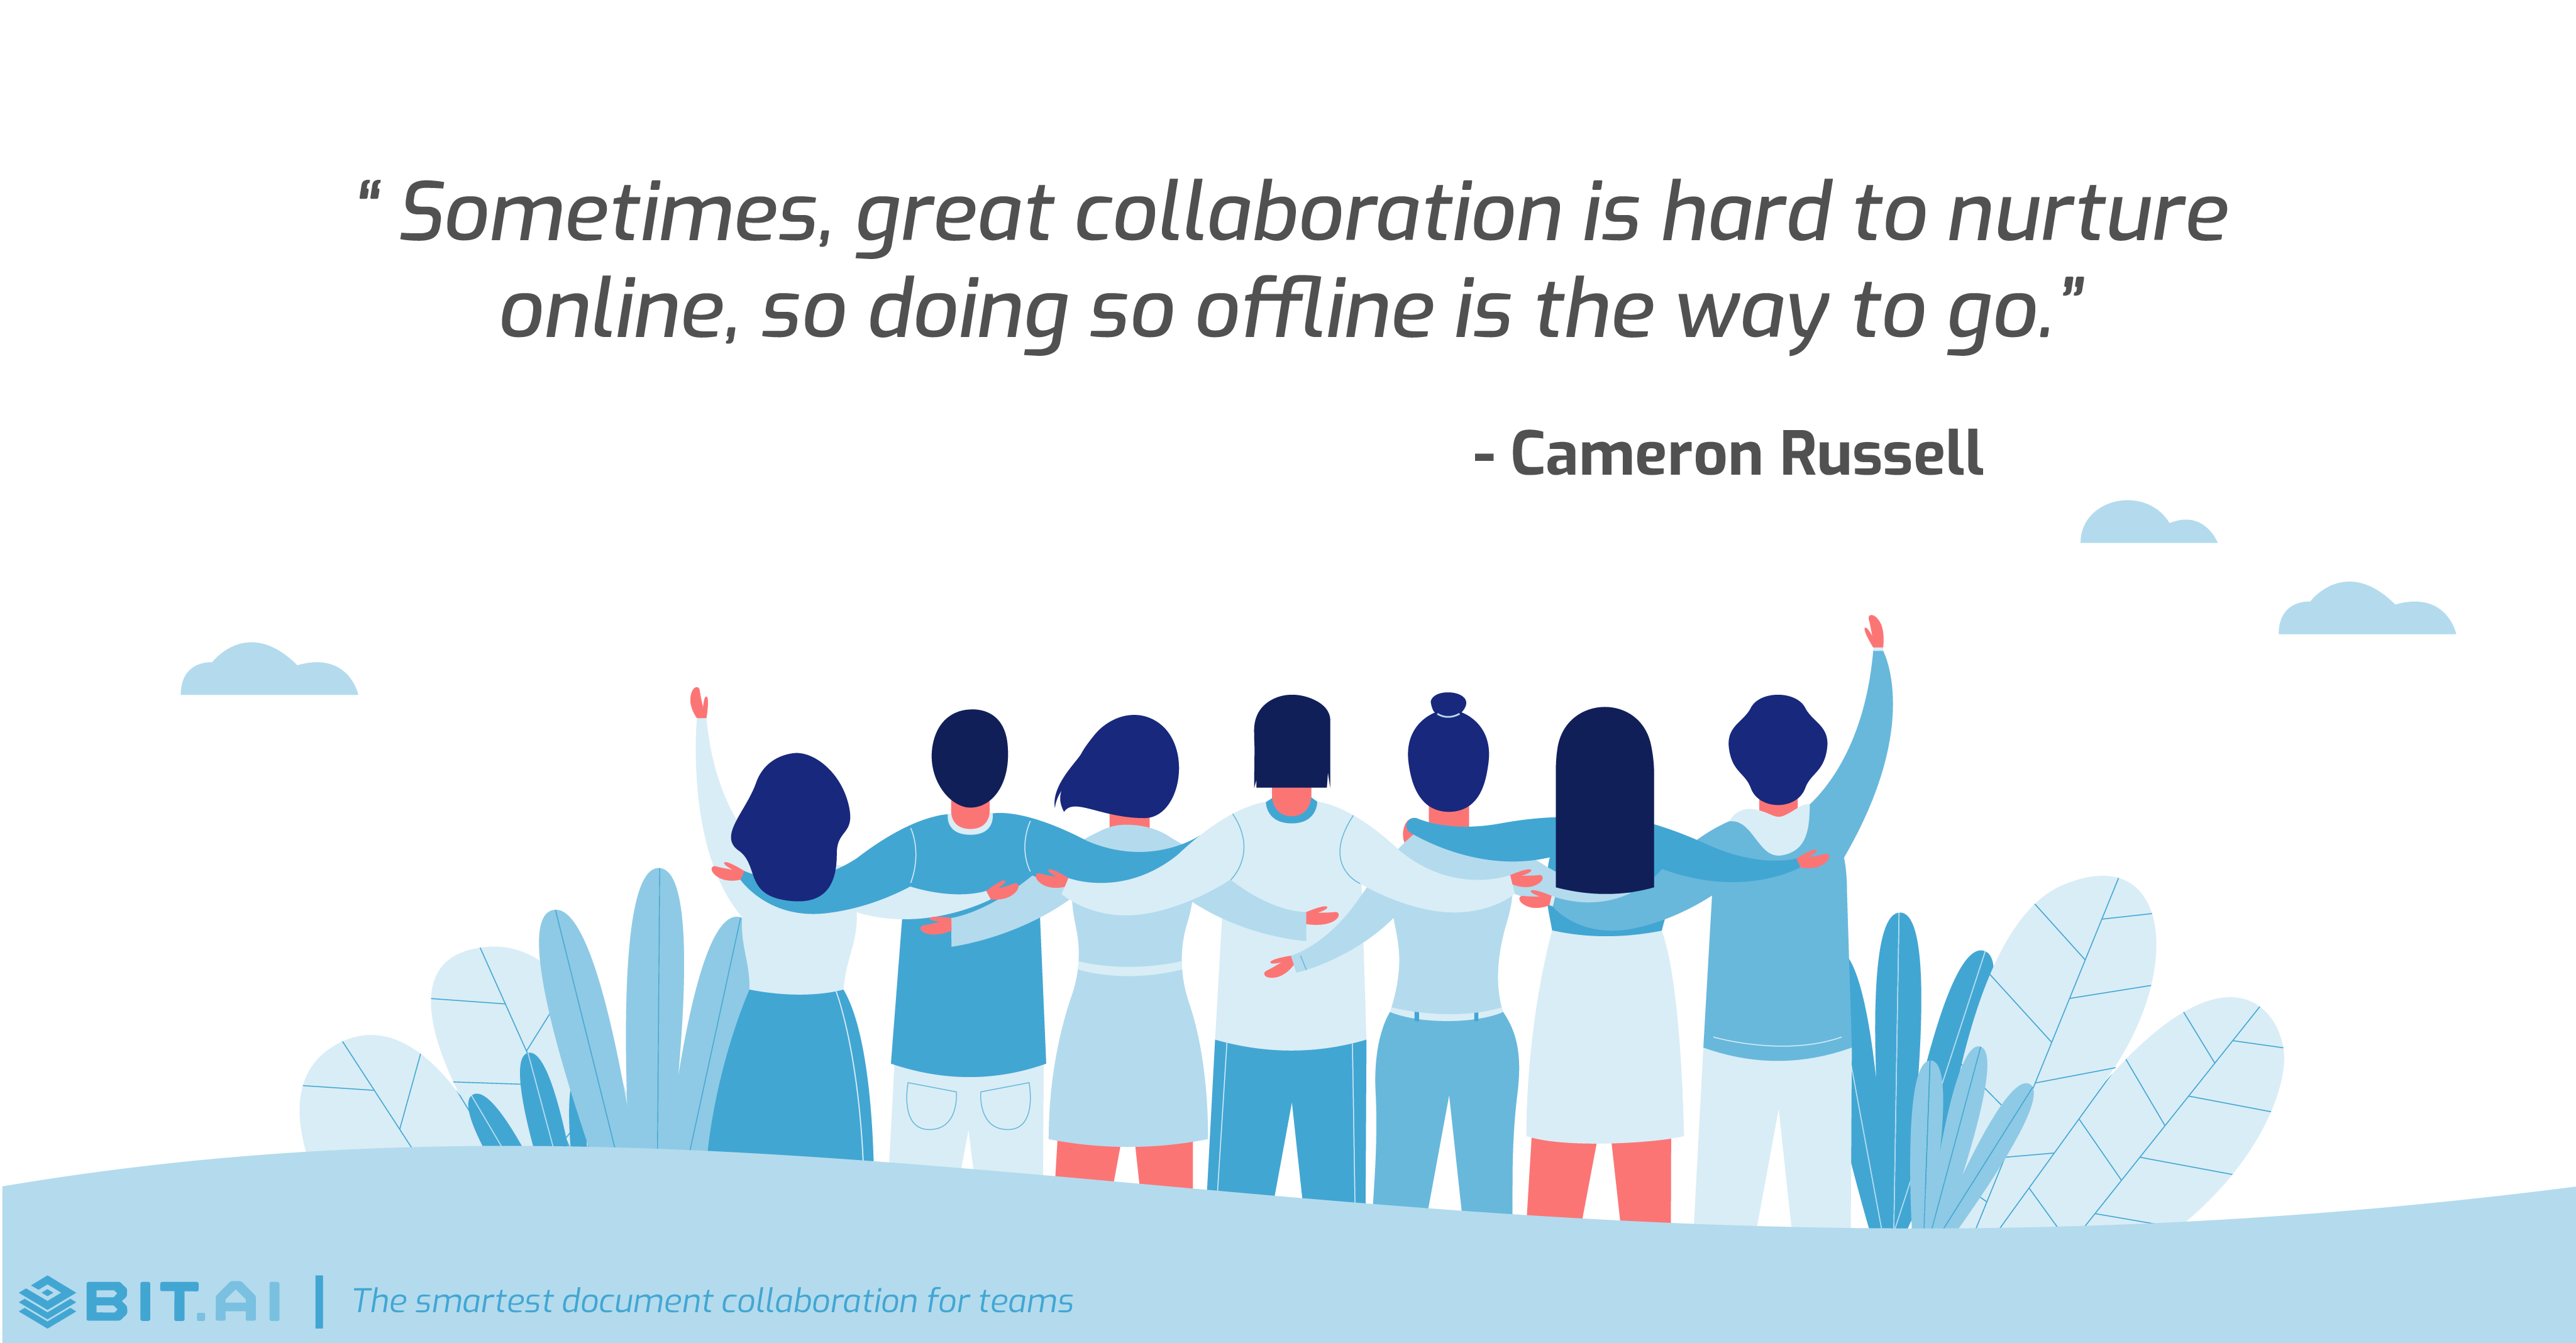 Teamwork collaboration quote by Cameron Russell